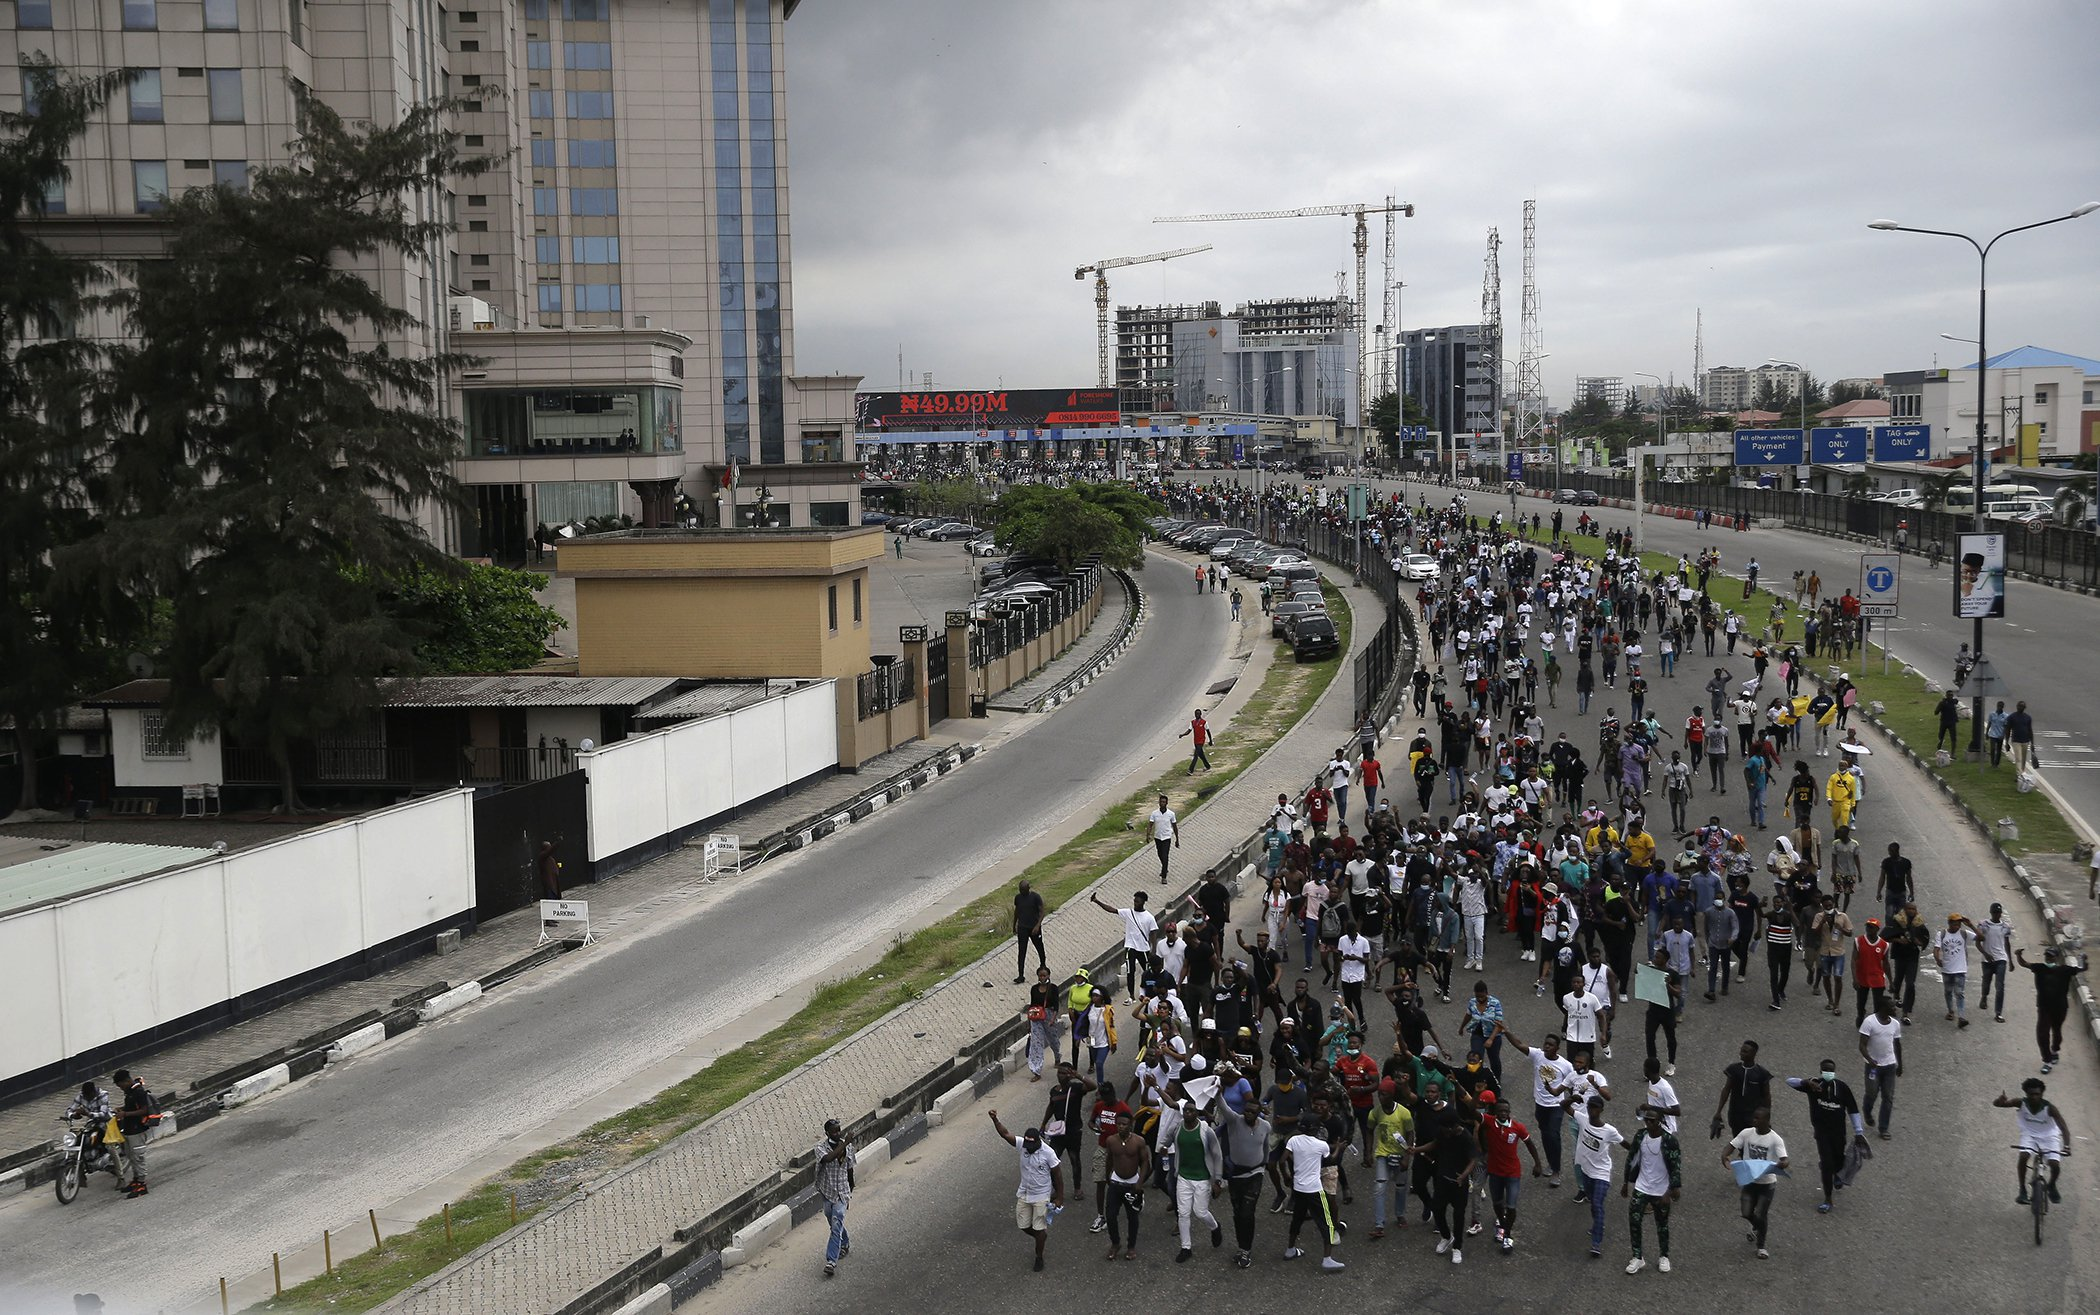 Nigeria-END-SARS-Protests-001.jpg